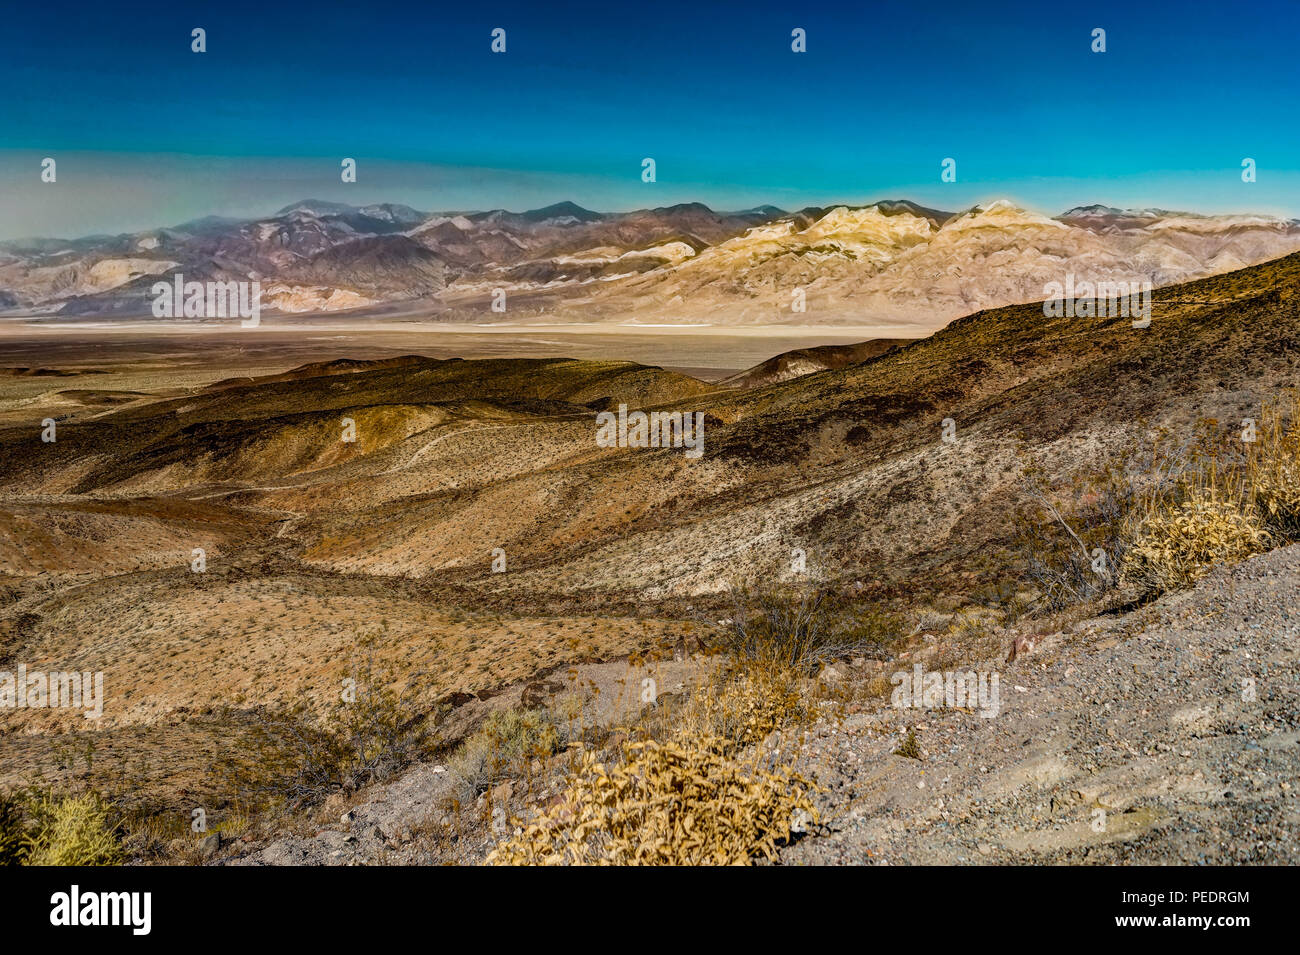 Photo taken in Death Valley Nationalpark in California and Nevada in United States of America. - Stock Image